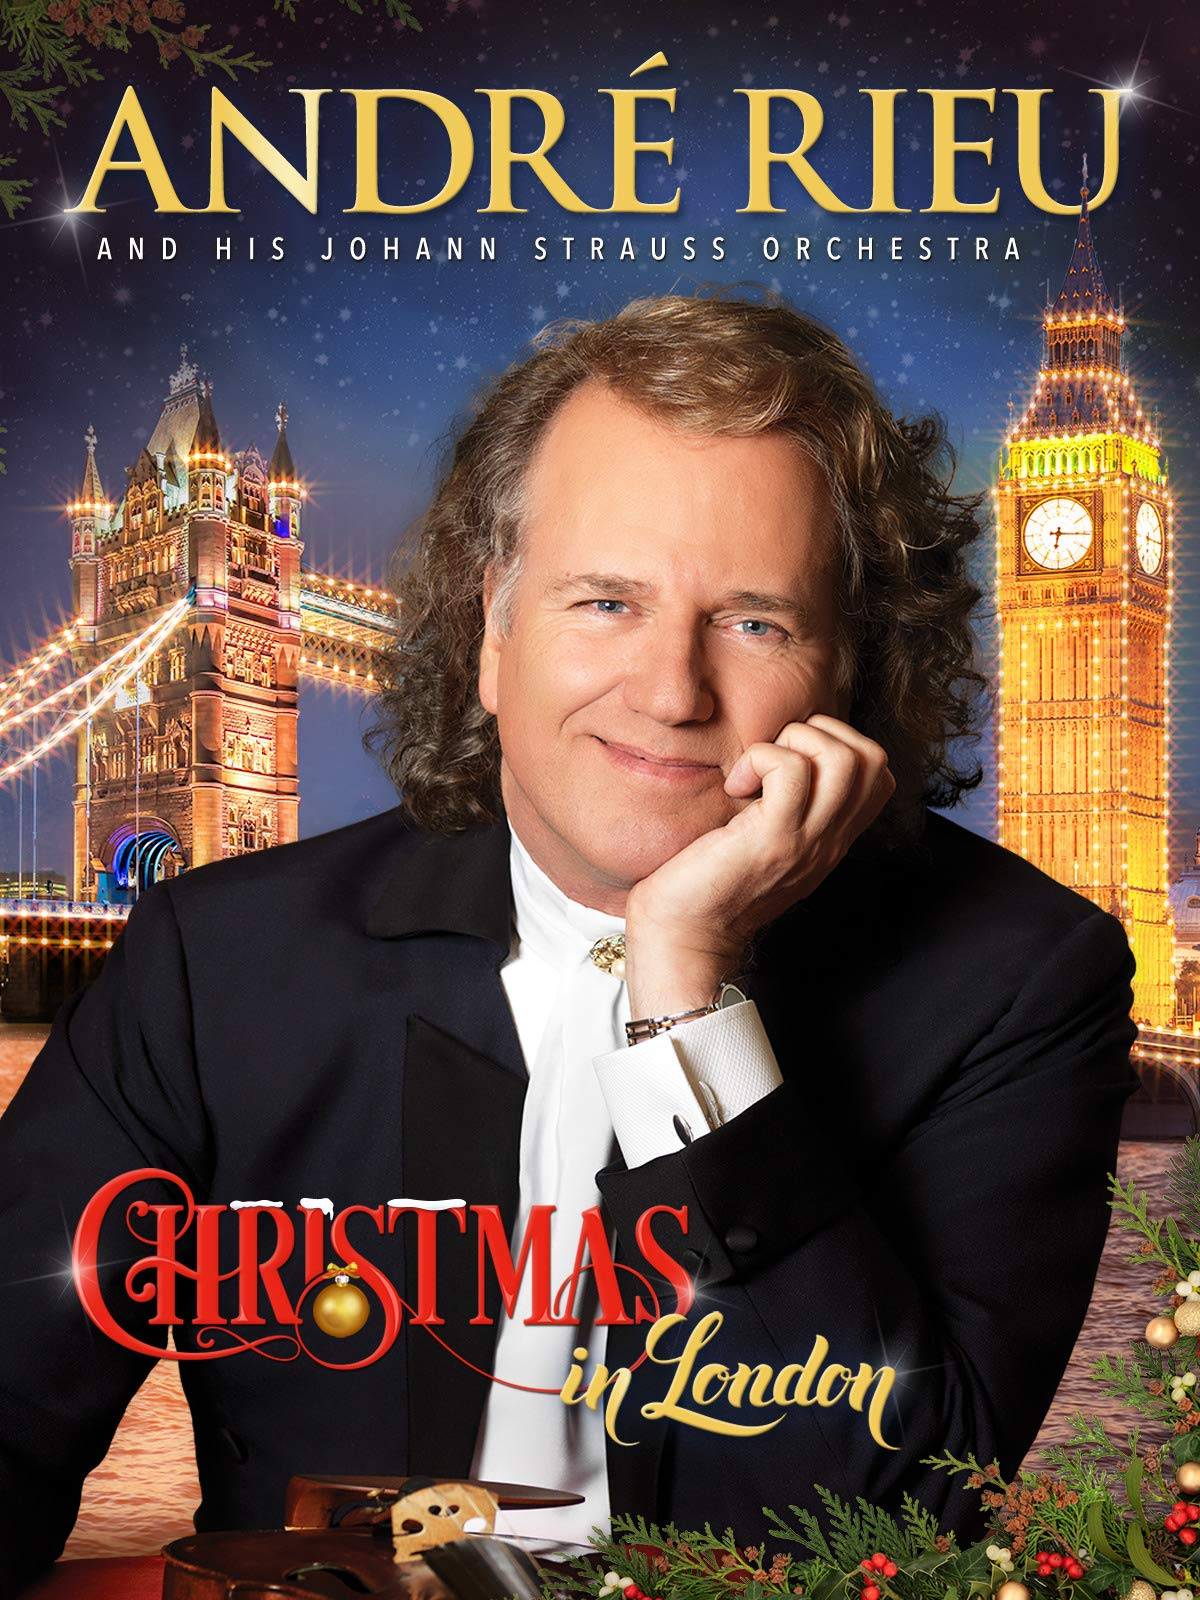 André Rieu And His Johann Strauss Orchestra - Christmas In London